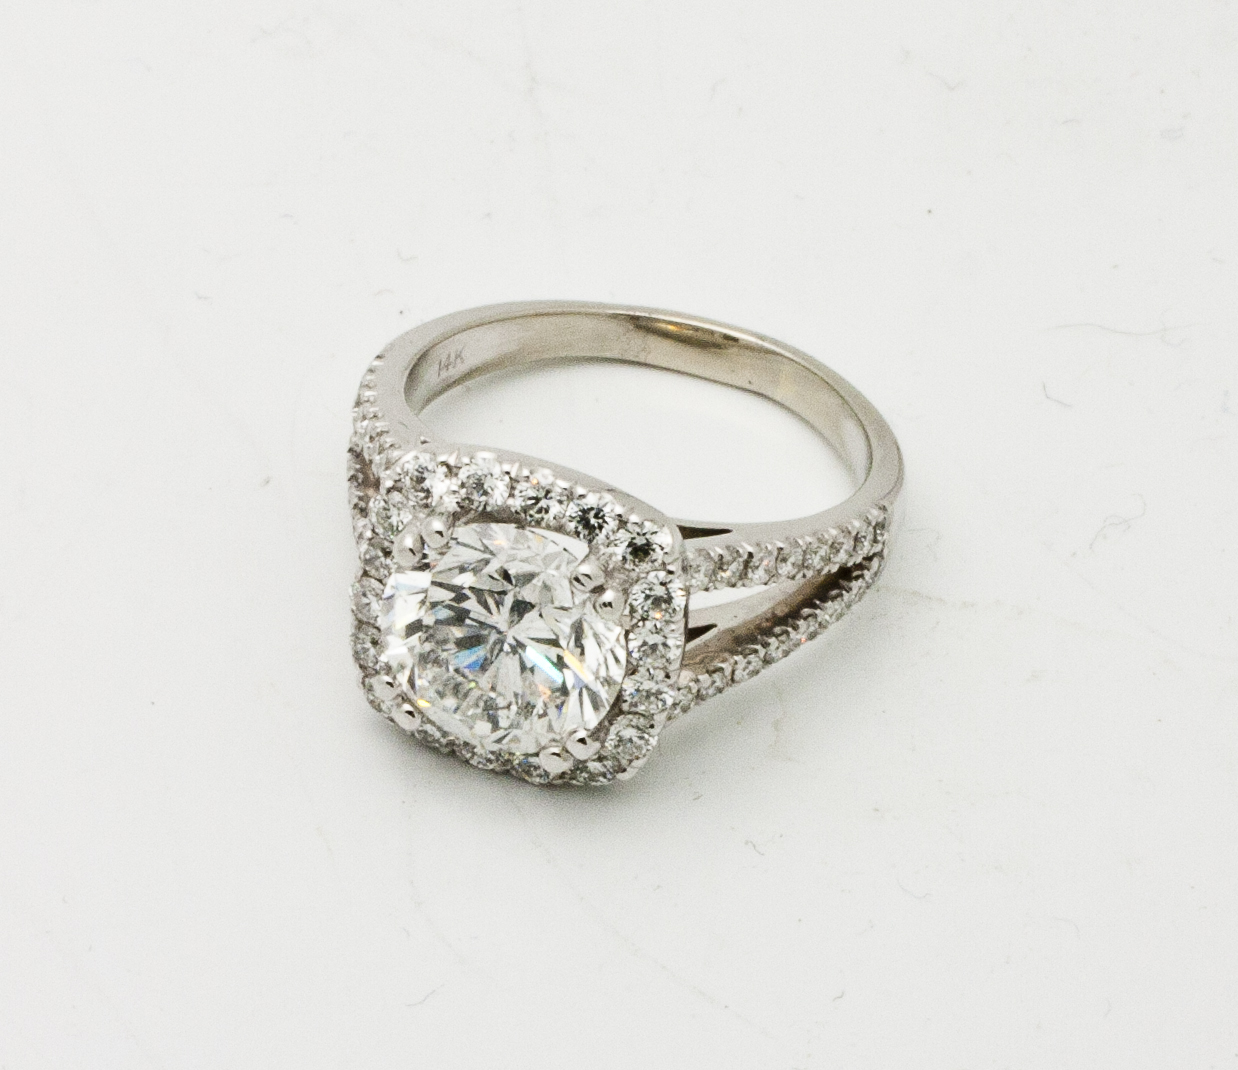 1.20ct round brilliant cut diamond center stone, 0.60tcw diamond side stones, cushion shaped diamond halo, split shank band, 18kt white gold.  Starting at $10,000 for this stone size and quality  Can be customizable with any stone, size, metal etc.